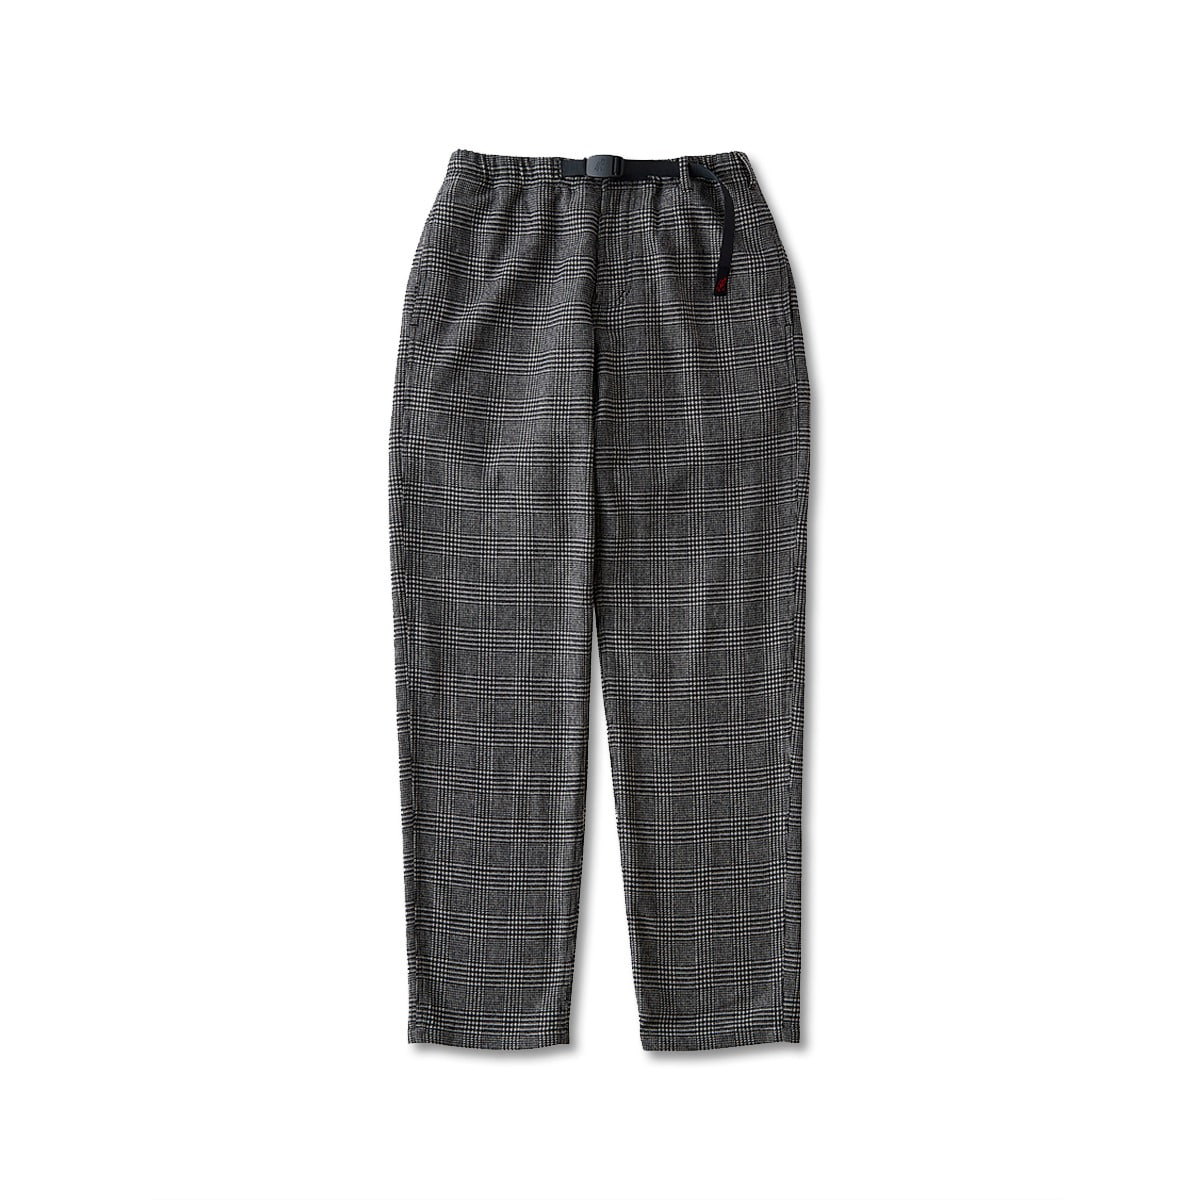 [GRAMICCI] WOOL BLEND GRAMICCI PANTS 'HOUNDSTOOTH PATTERN'